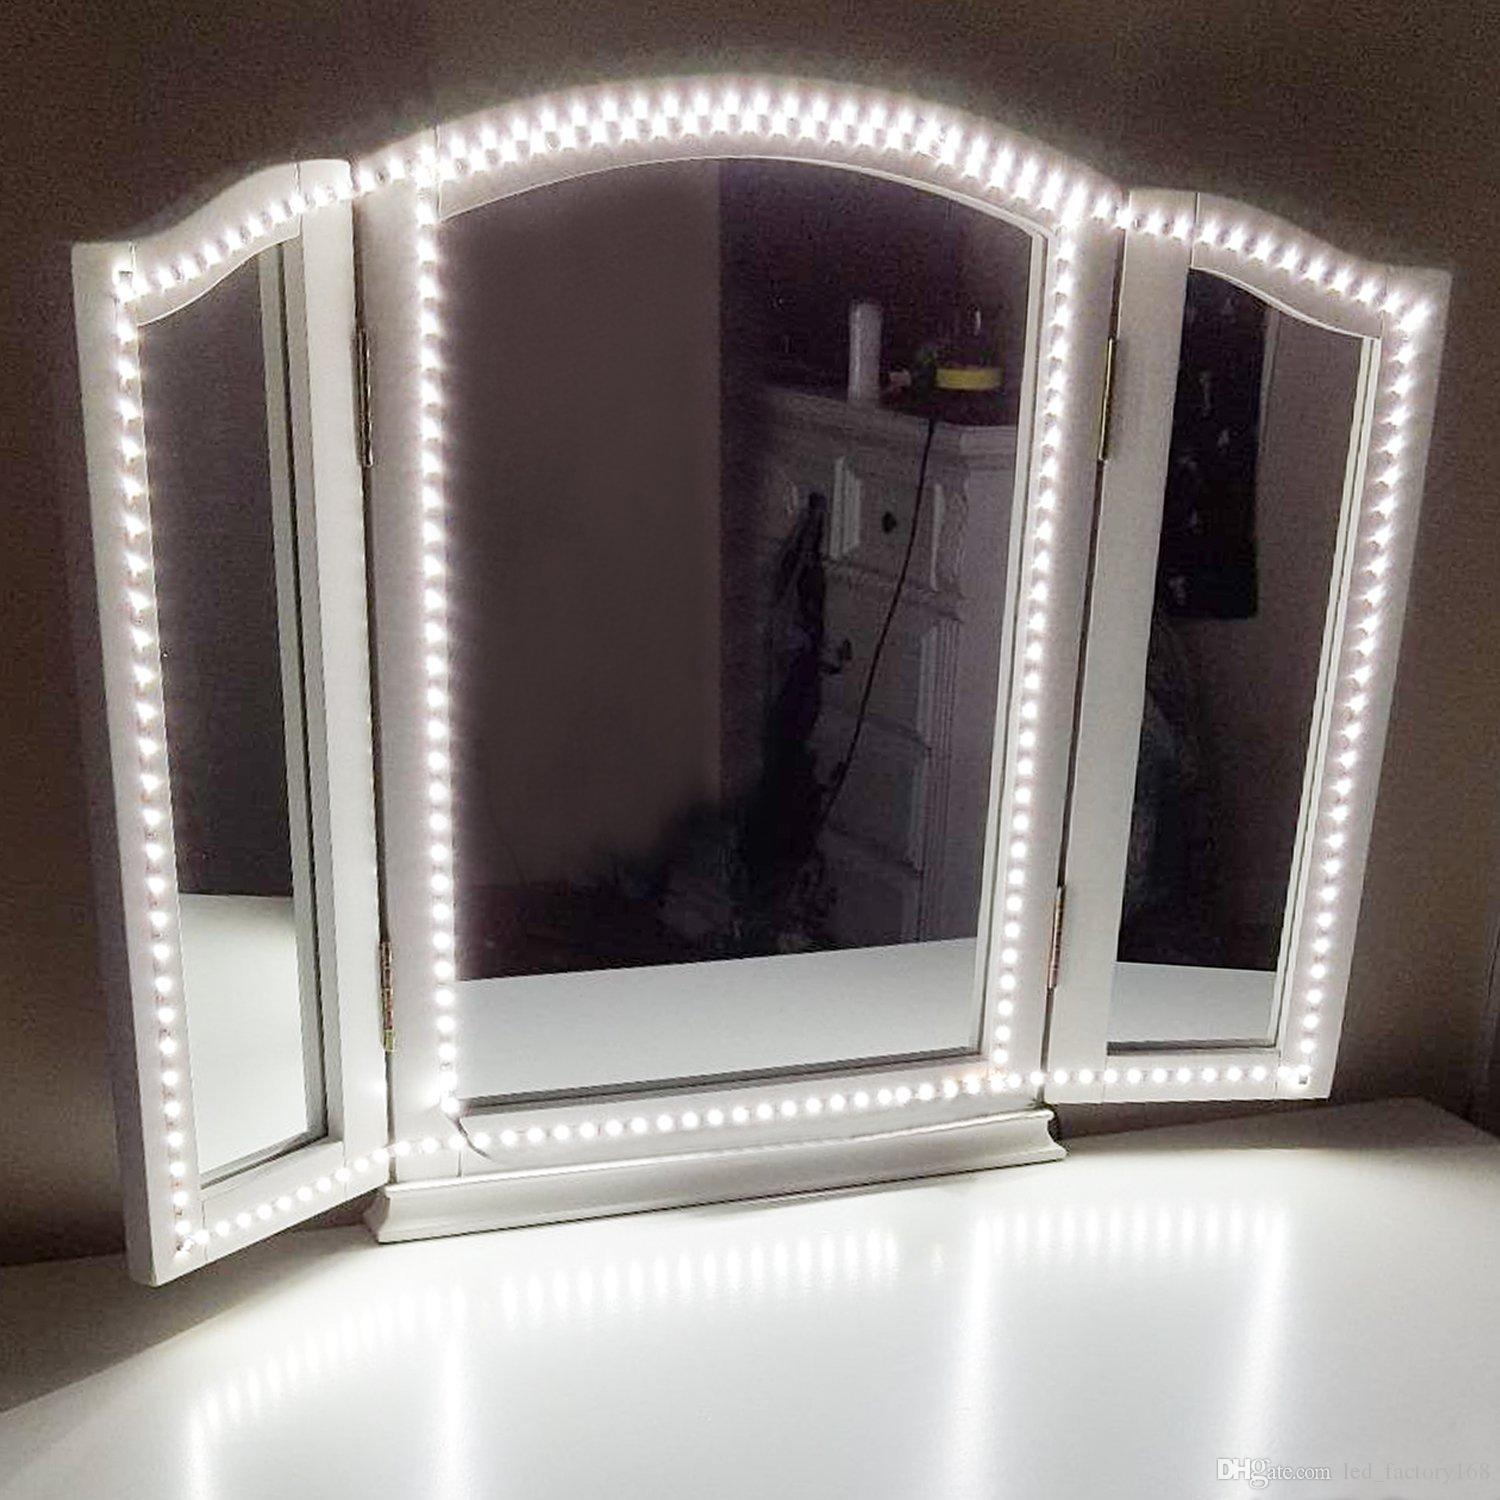 2018 Led Vanity Mirror Lights Kit For Makeup Dressing Table Set Flexible Light Strip 6000k Daylight White Holiday Home Kitch From